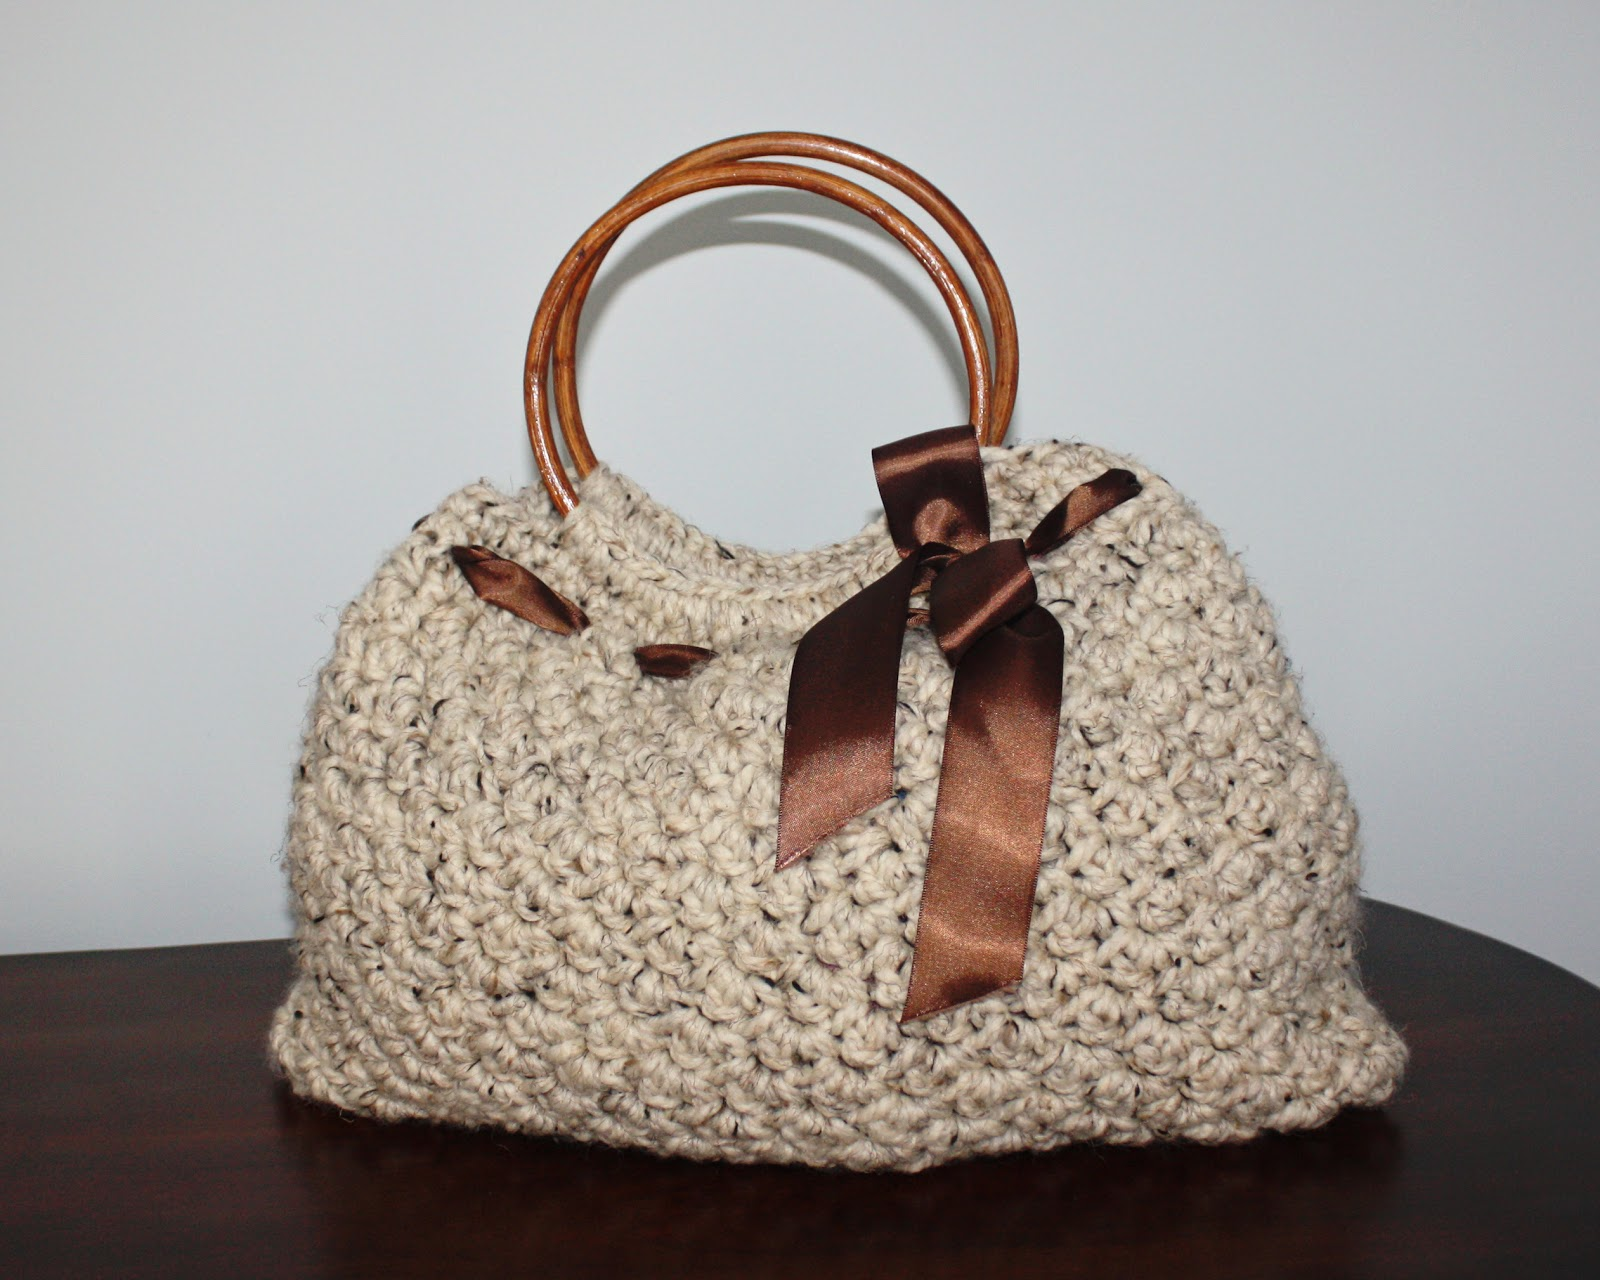 Free Crochet Patterns Purses Handbags : Pretty Darn Adorable Crochet: Crochet Handbag/Purse